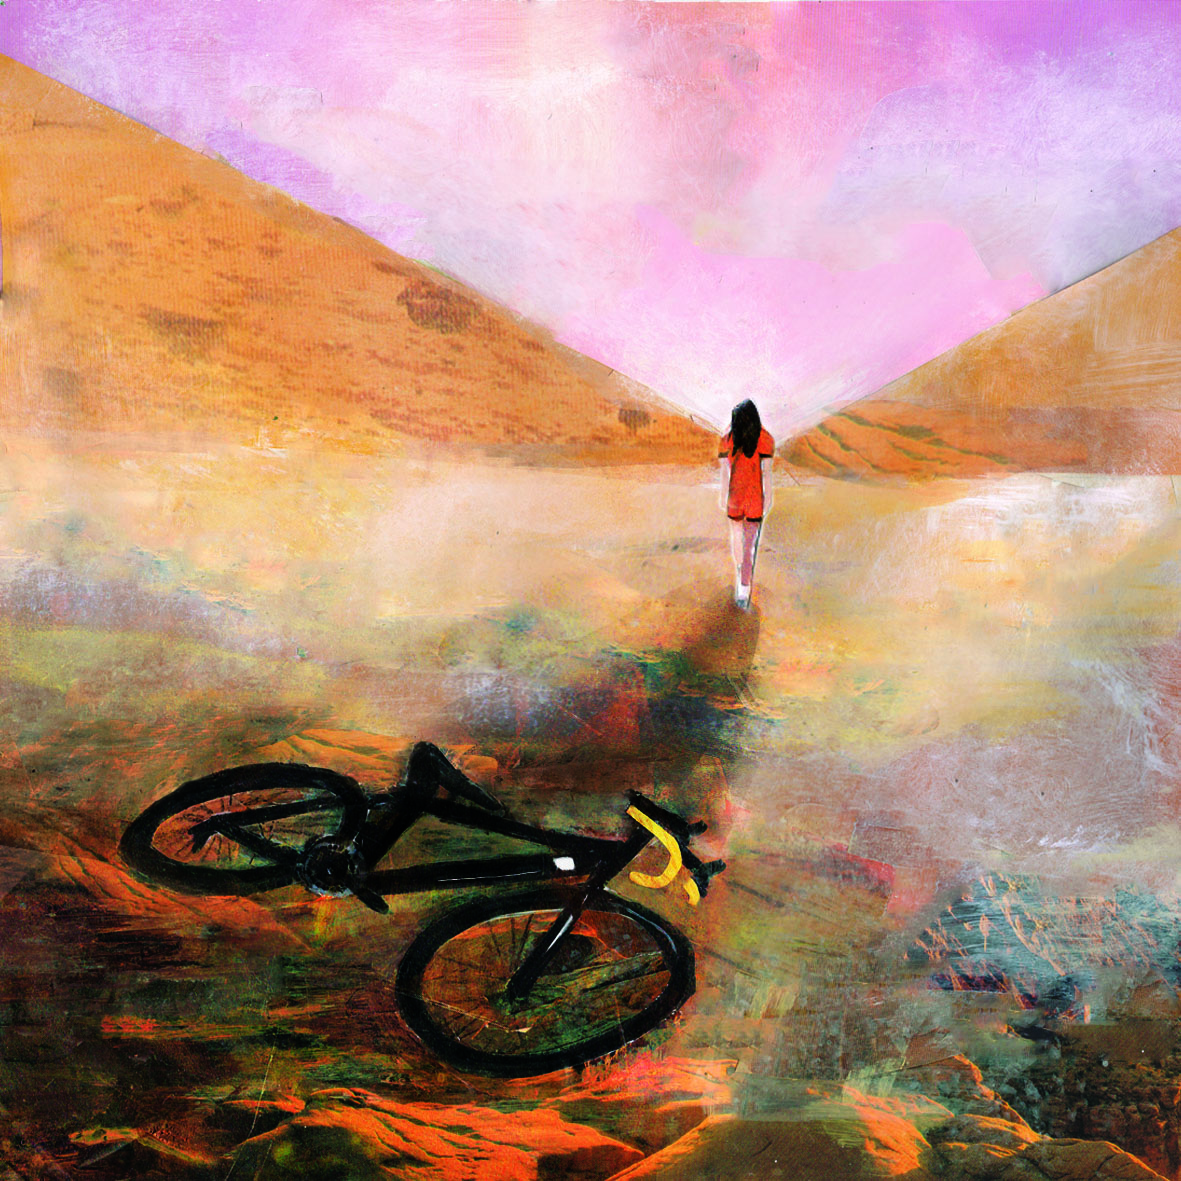 Drawn to cycling: Showcasing the work of illustrator Grace Russell